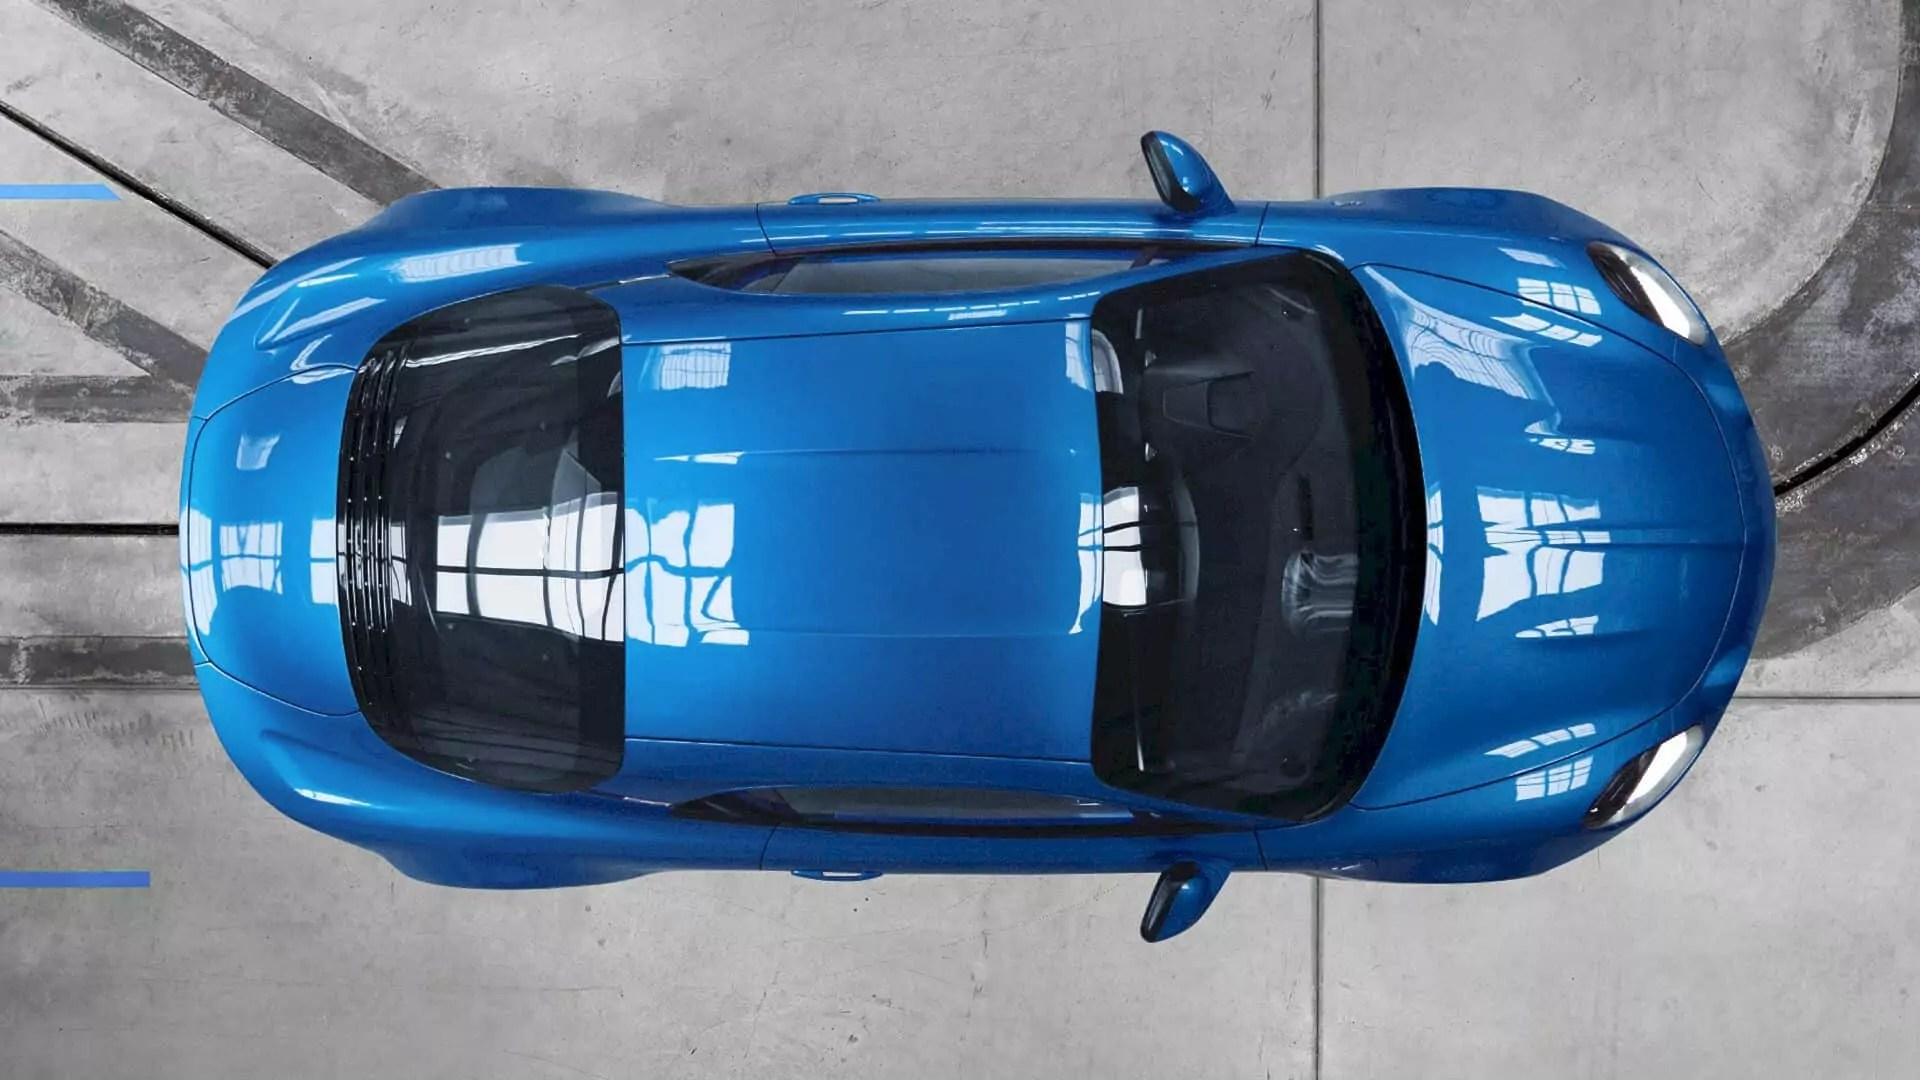 Alpine A110: The New Kids on The Block With Absolute Agility